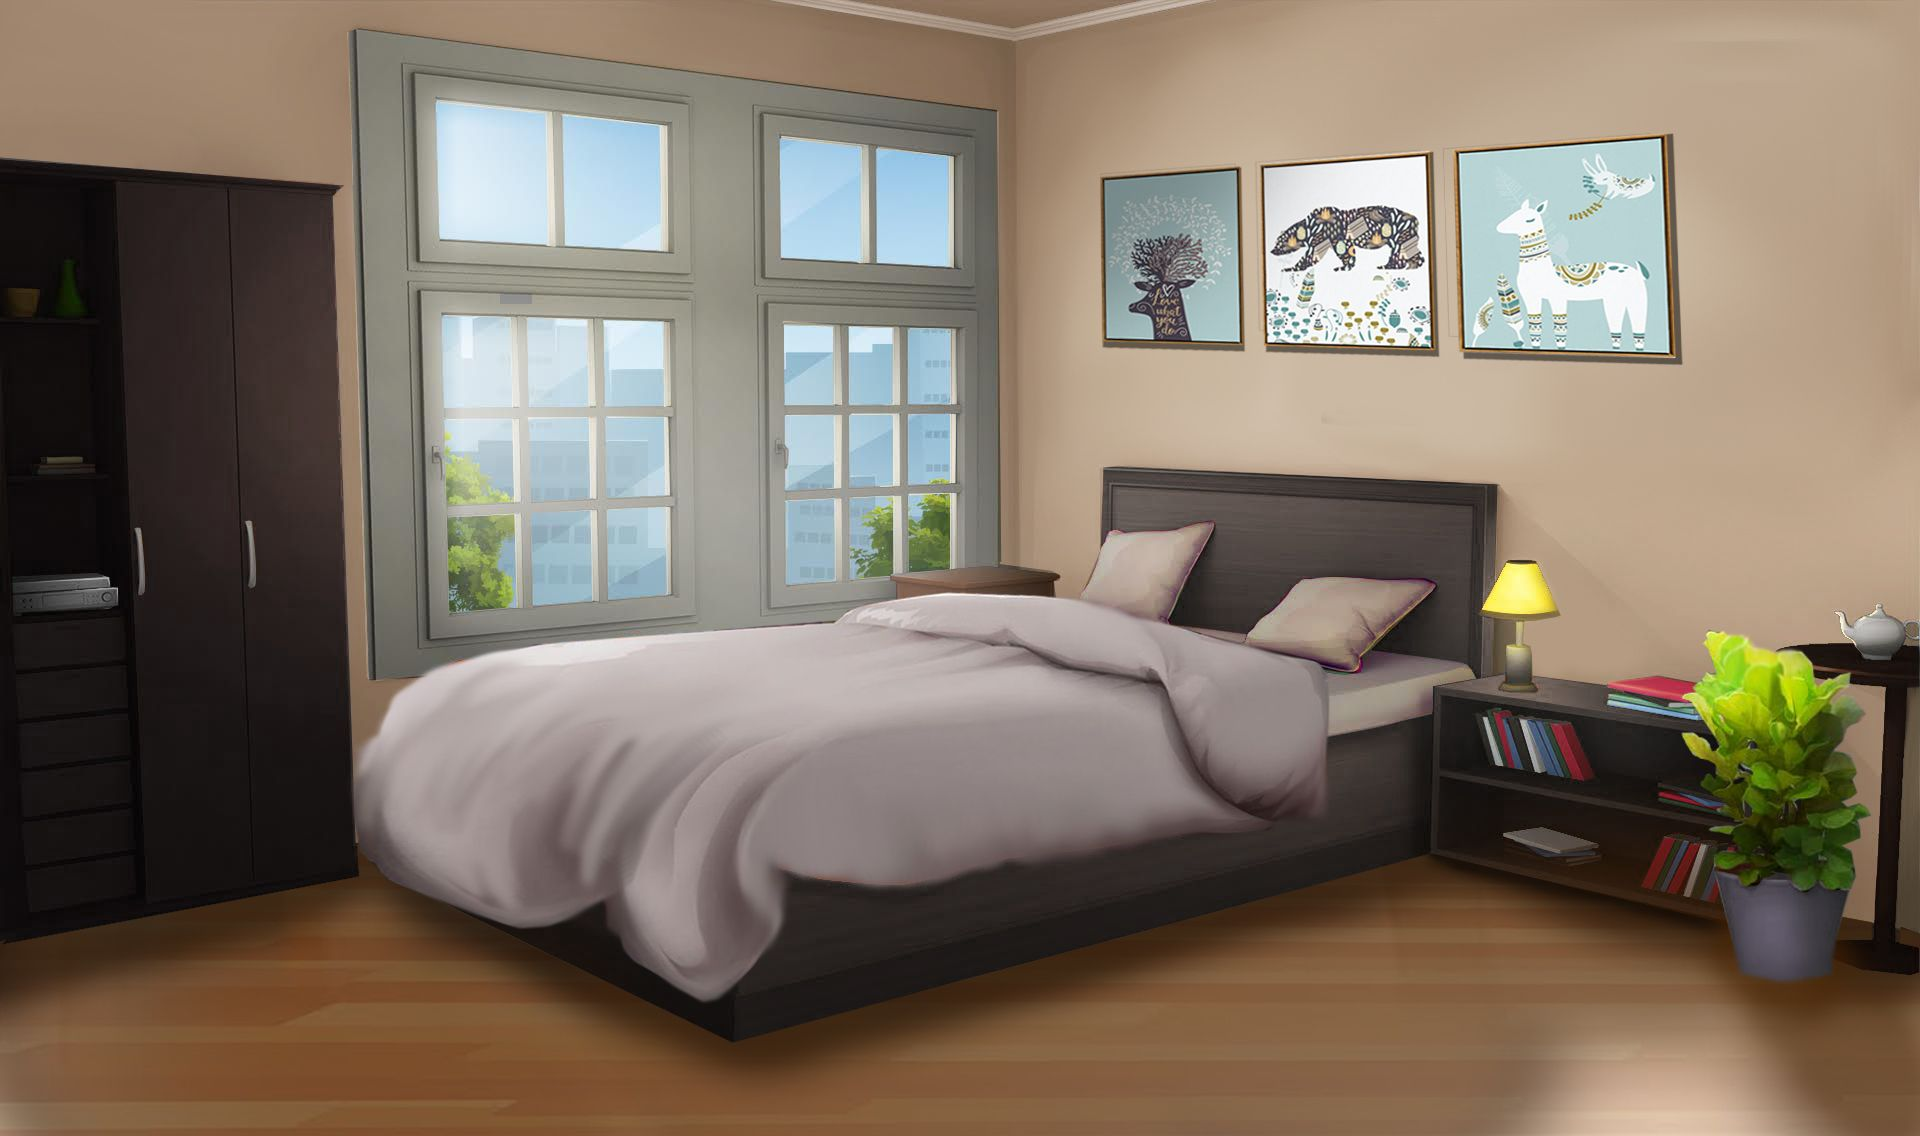 An Apartment In The March Episode Interactive Backgrounds Anime